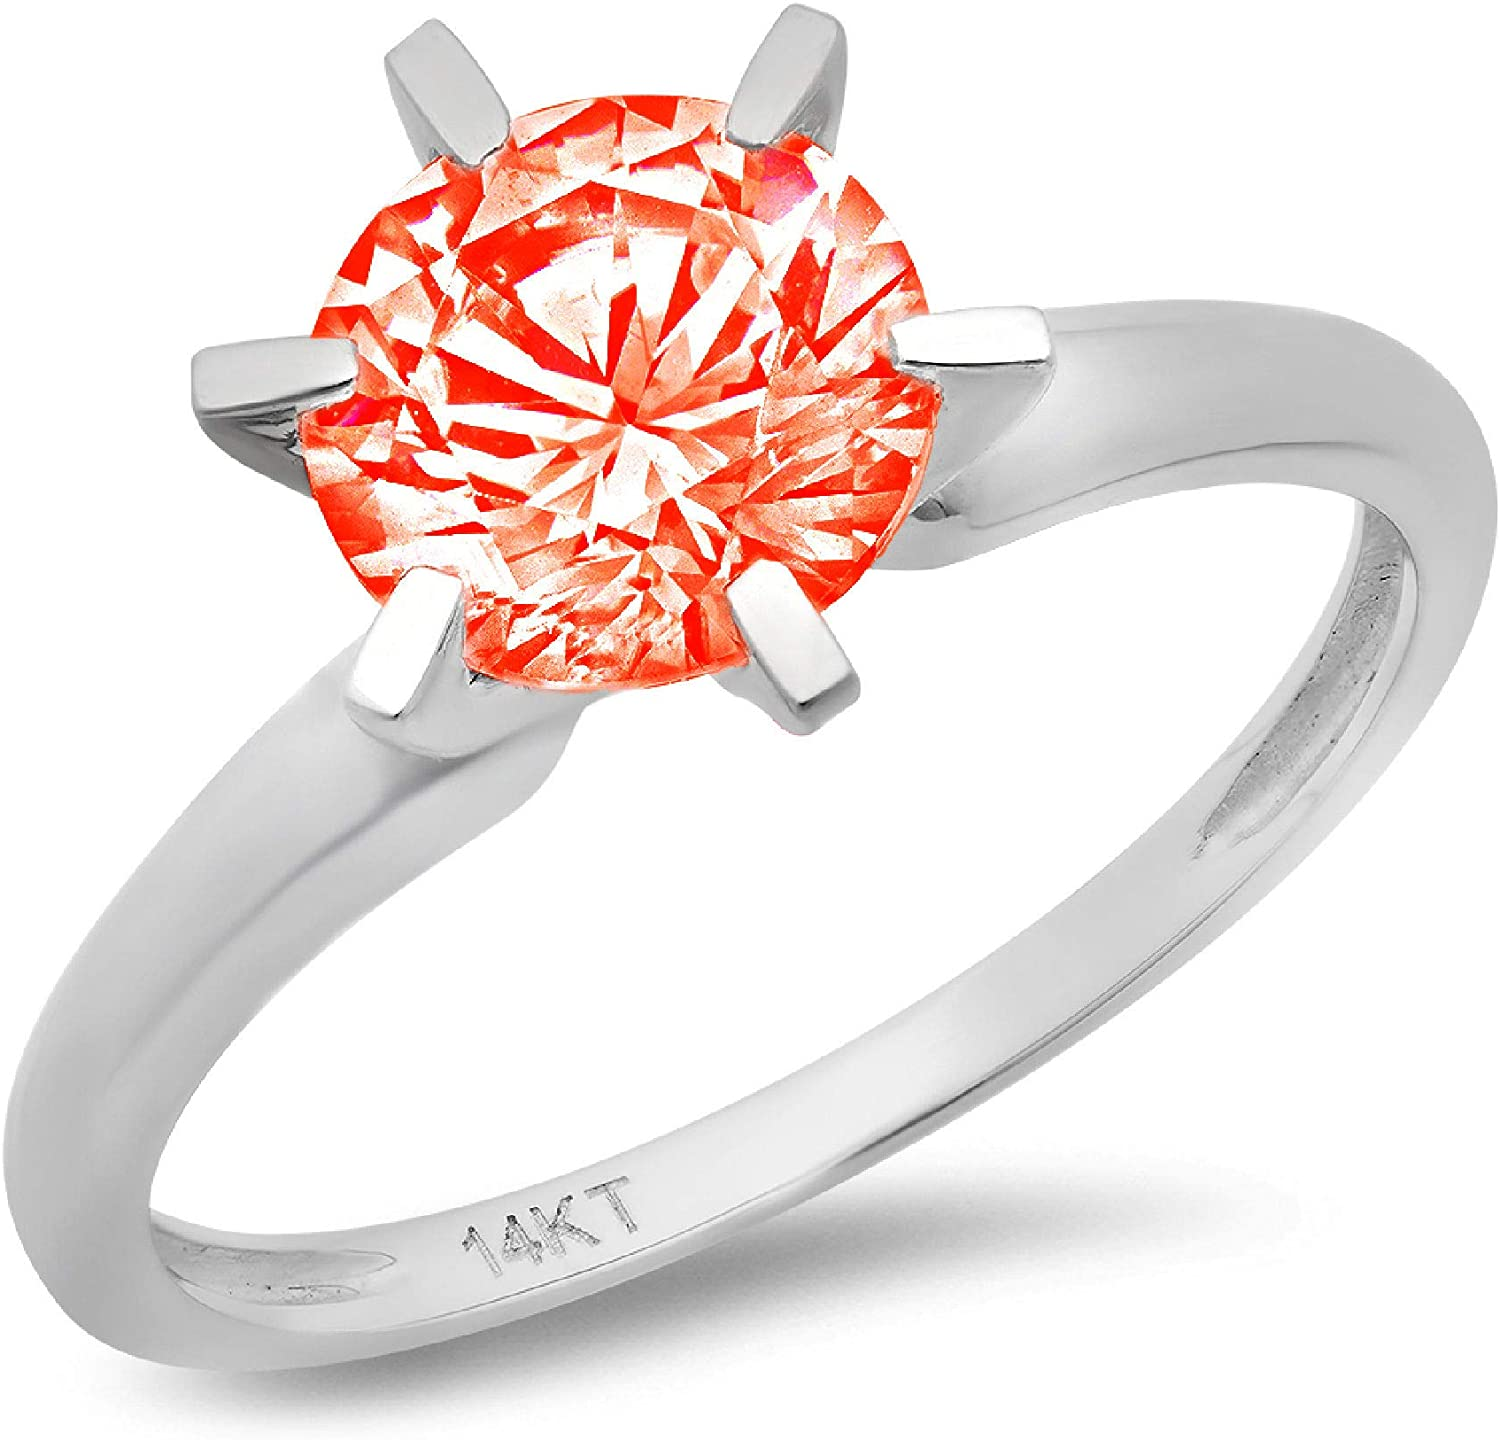 1.50 ct Round Cut Solitaire Hot Red Simulated Diamond CZ Ideal VVS1 D 4-Prong Engagement Wedding Bridal Promise Anniversary Ring Solid Real 14k white Gold for Women